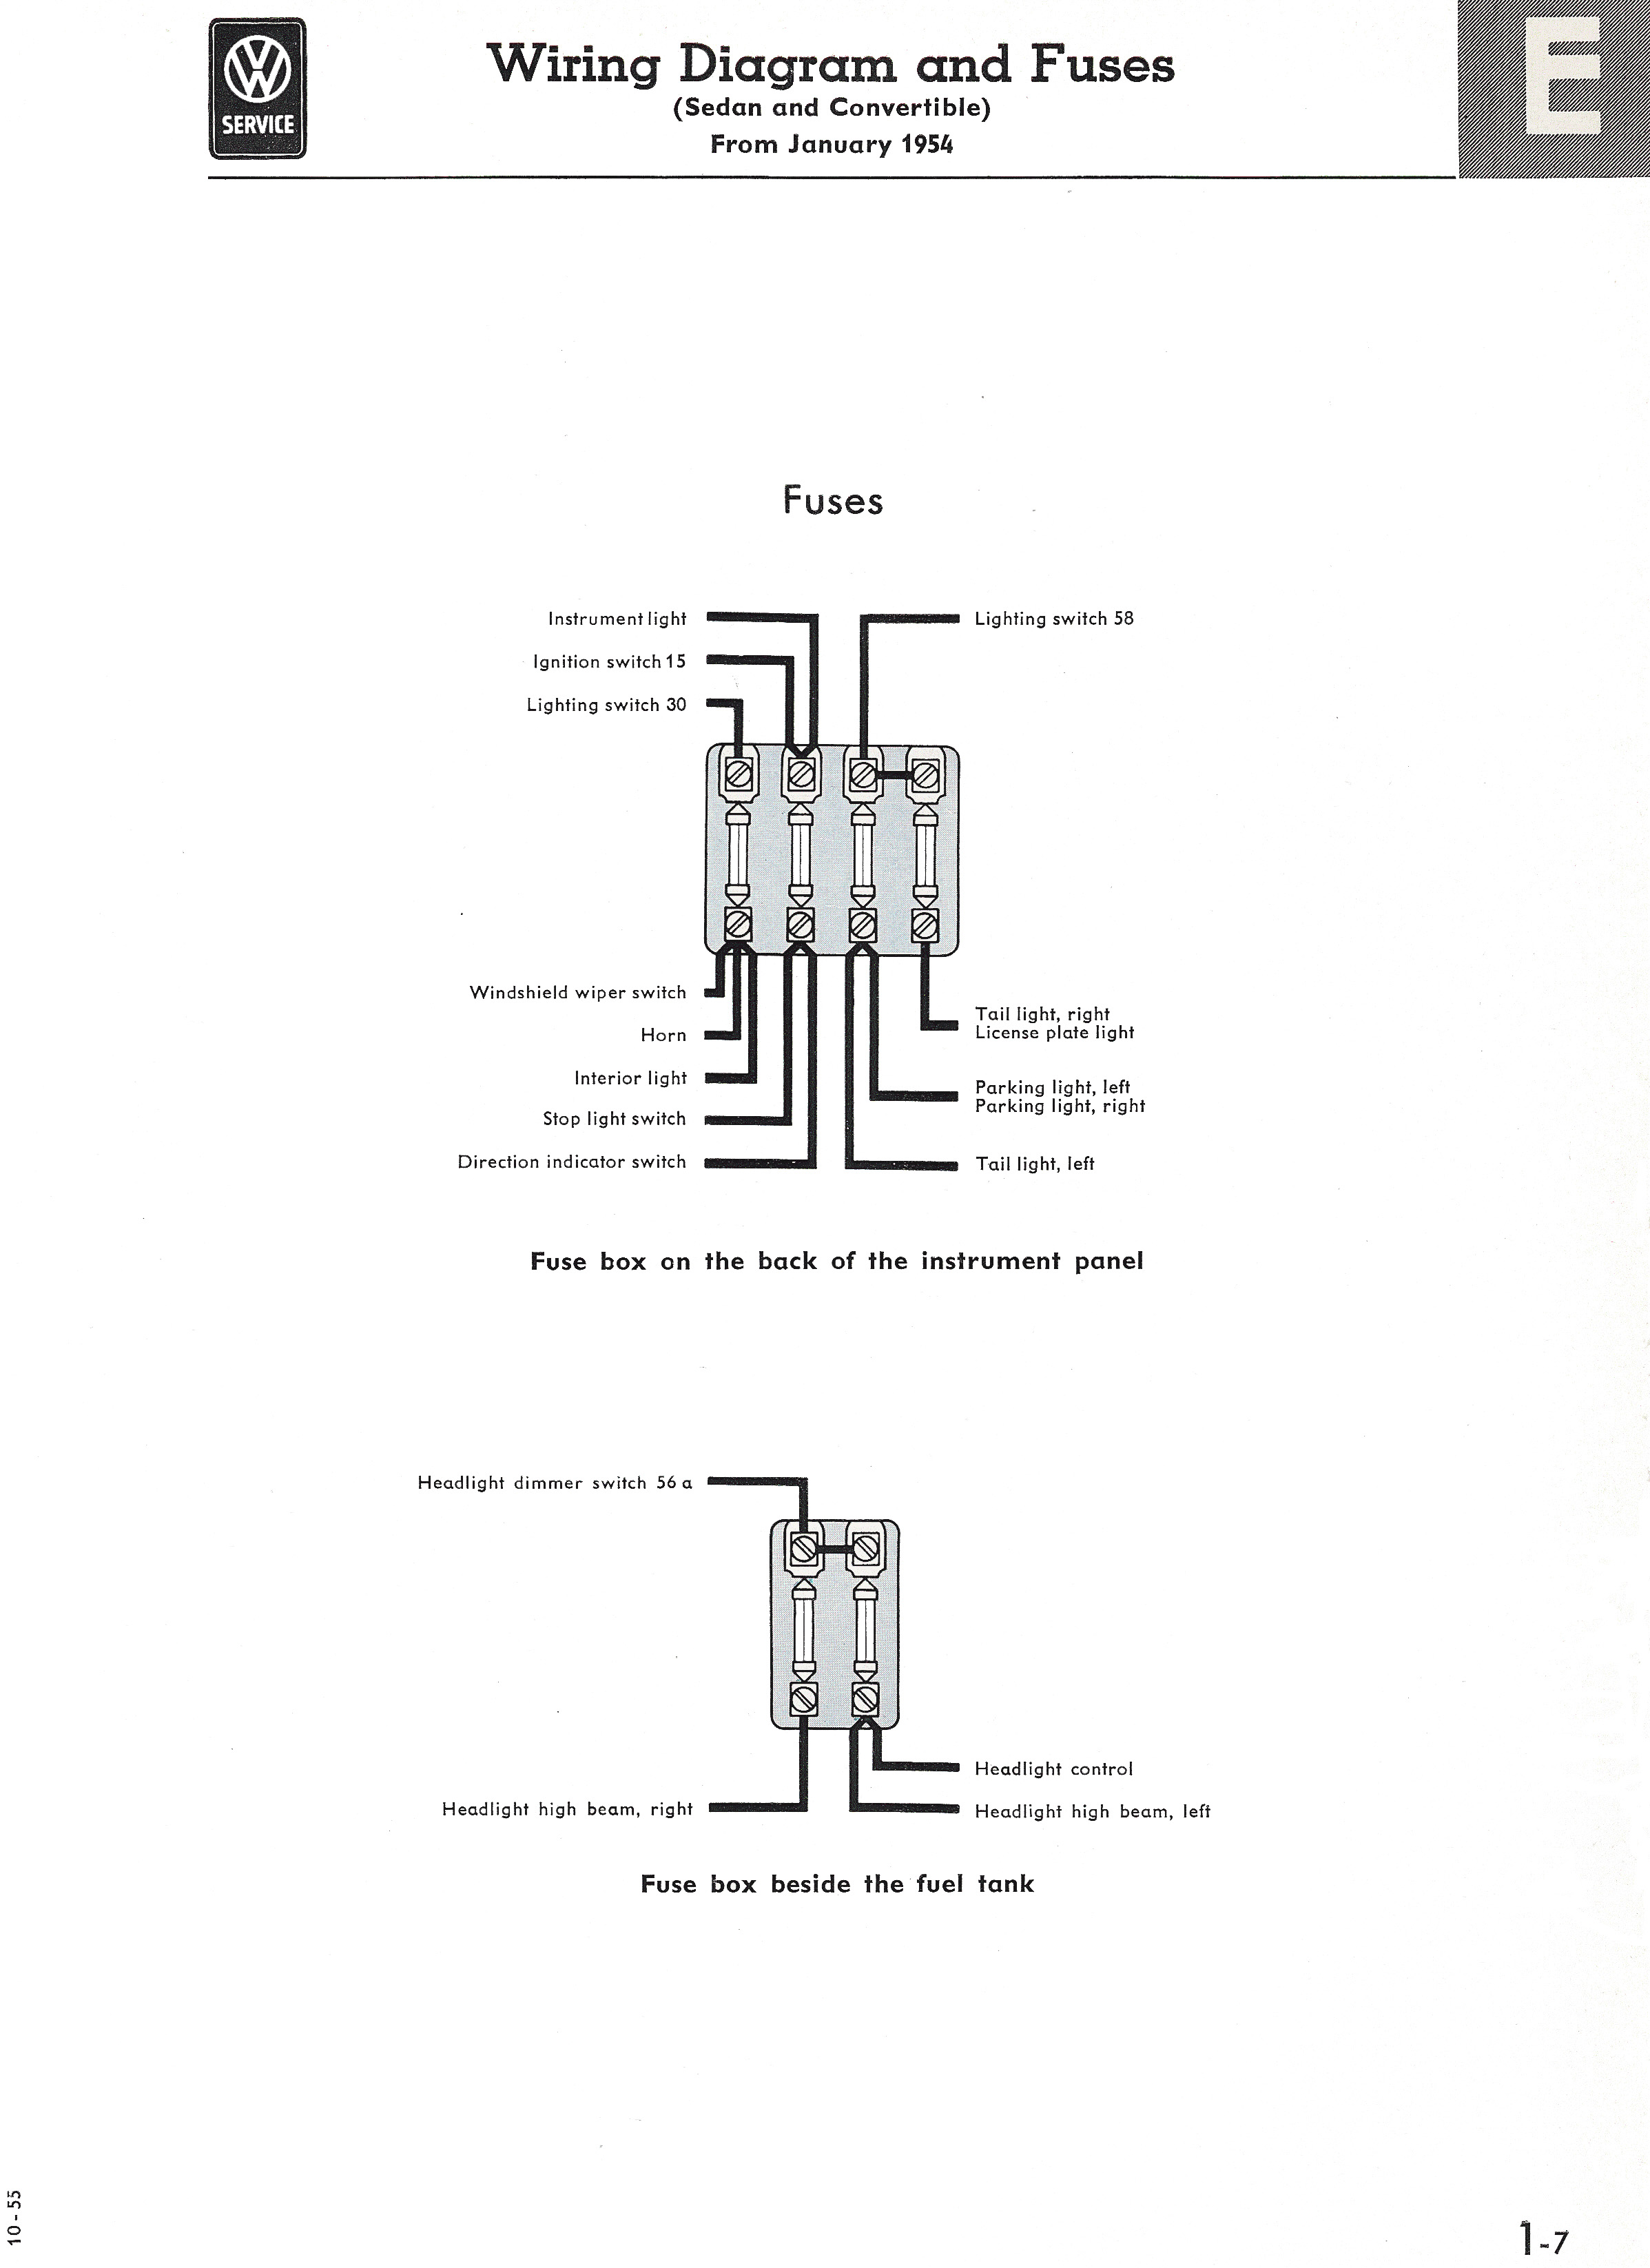 Type 1 Wiring Diagrams 69 71 Volkswagen Beetle Diagram